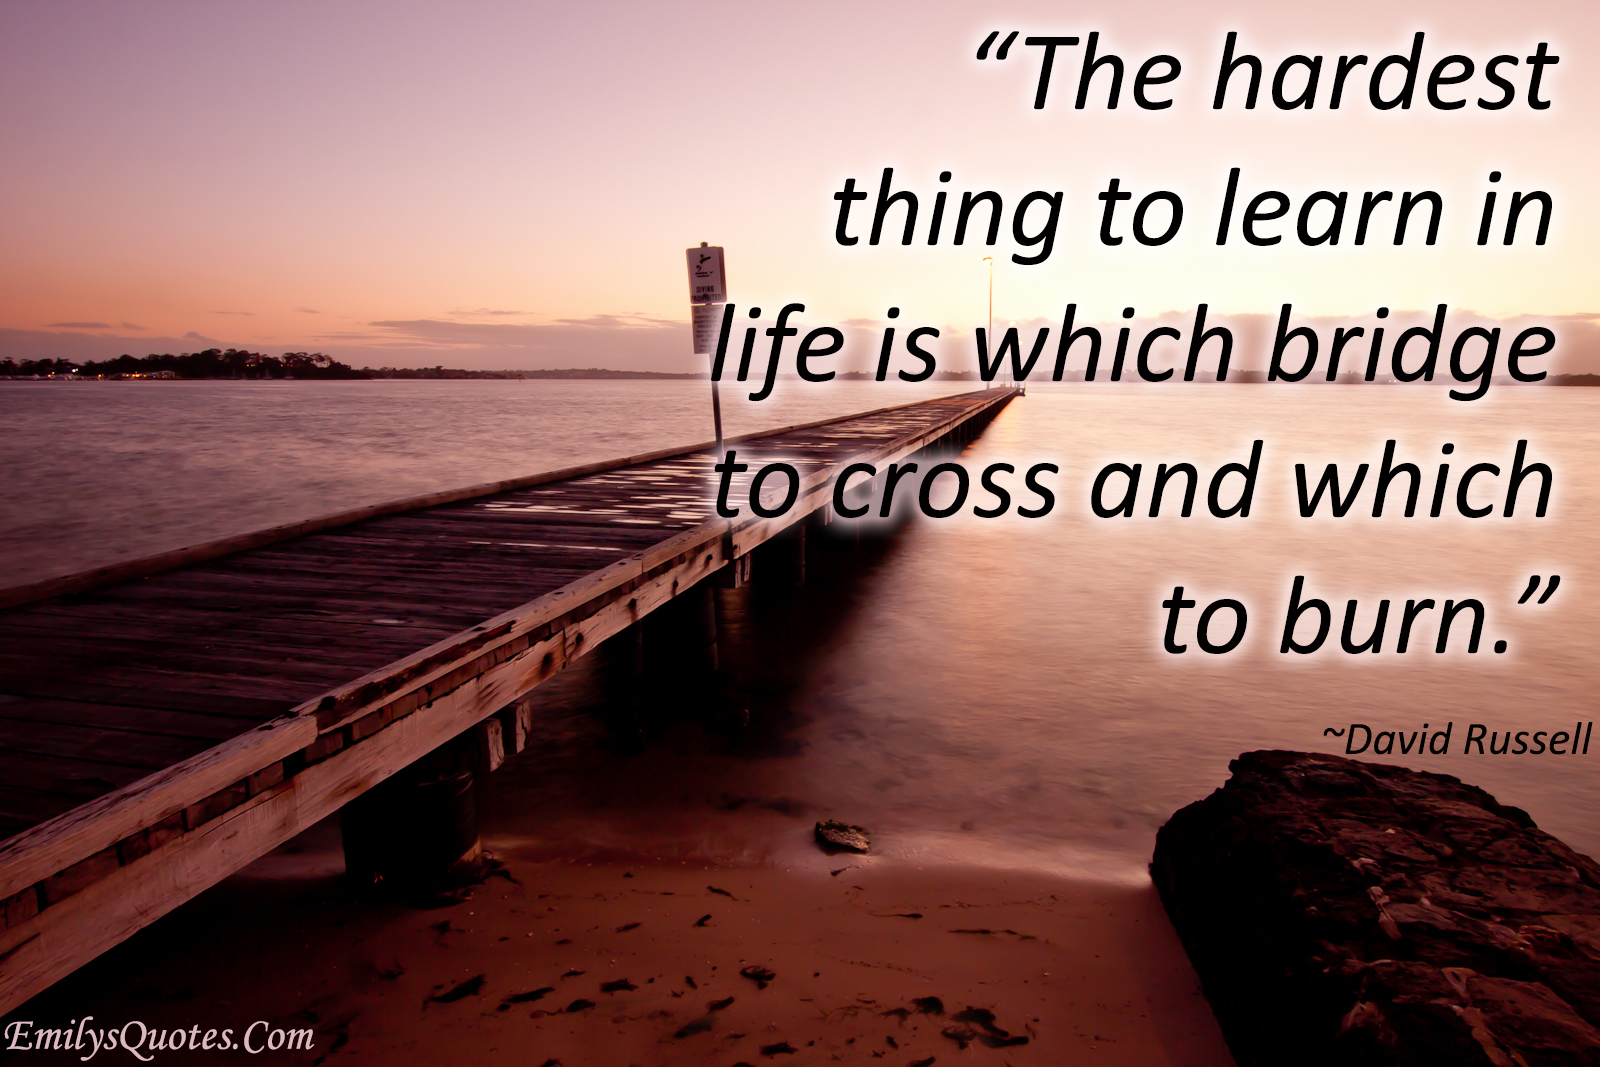 Life Quotes Com Impressive The Hardest Thing To Learn In Life Is Which Bridge To Cross And